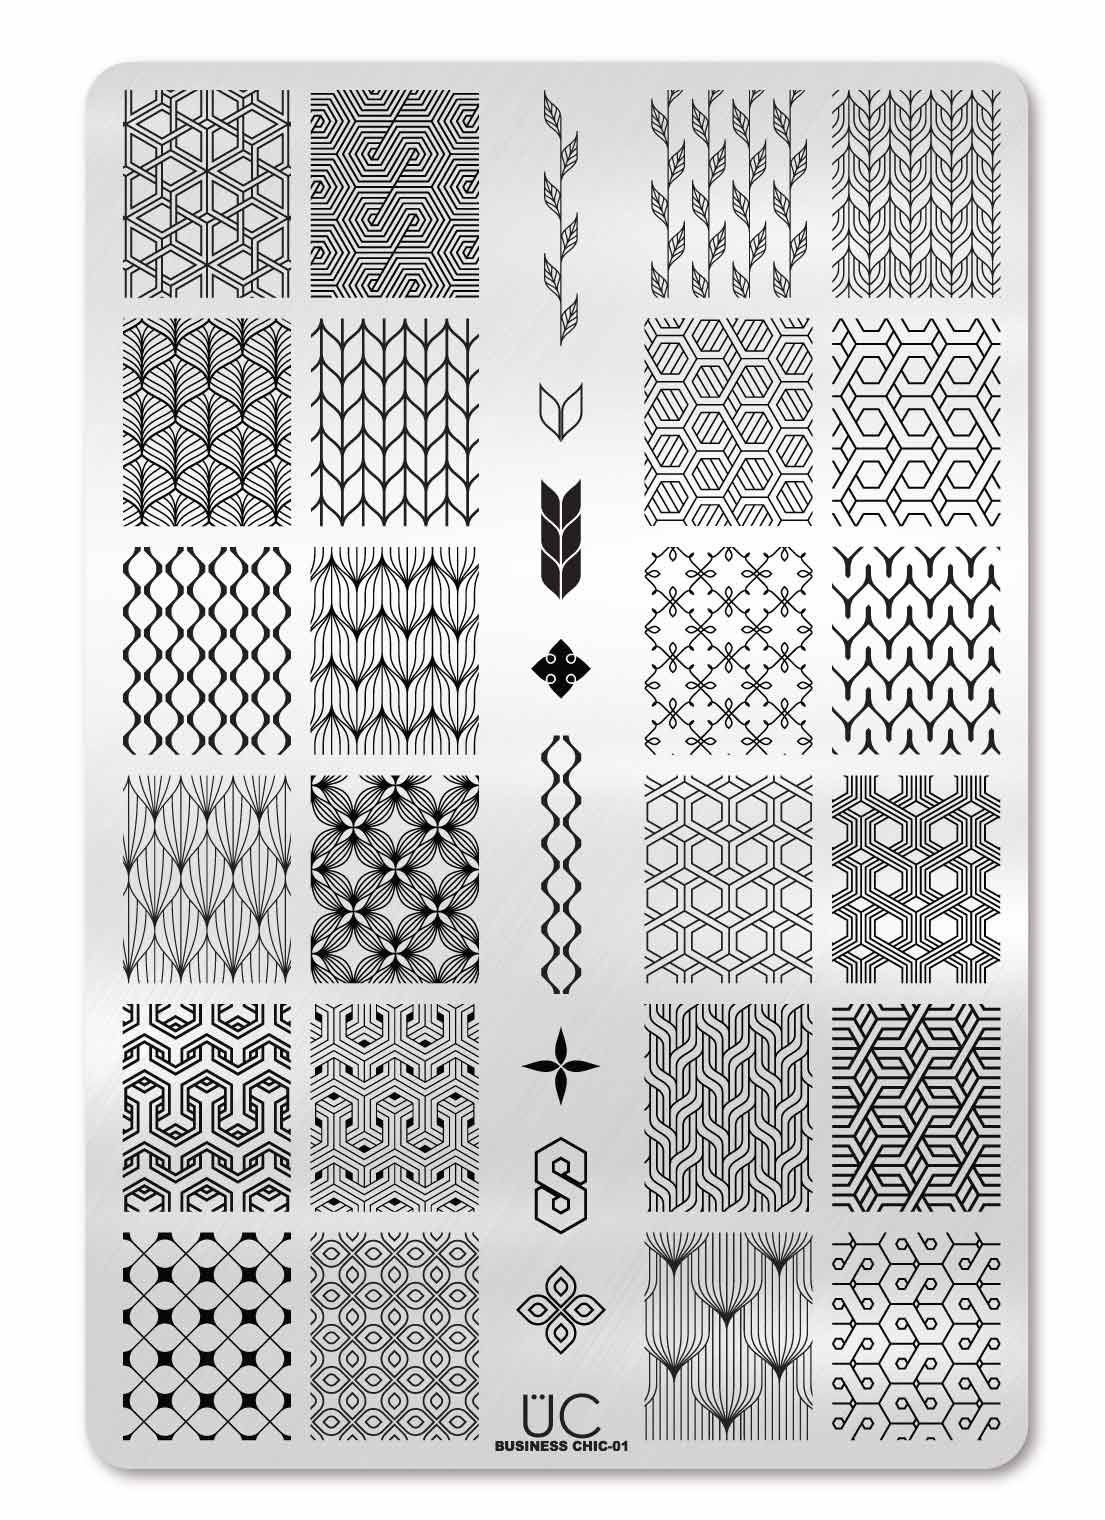 Business Chic-01 - UberChic Nail Stamping Plate